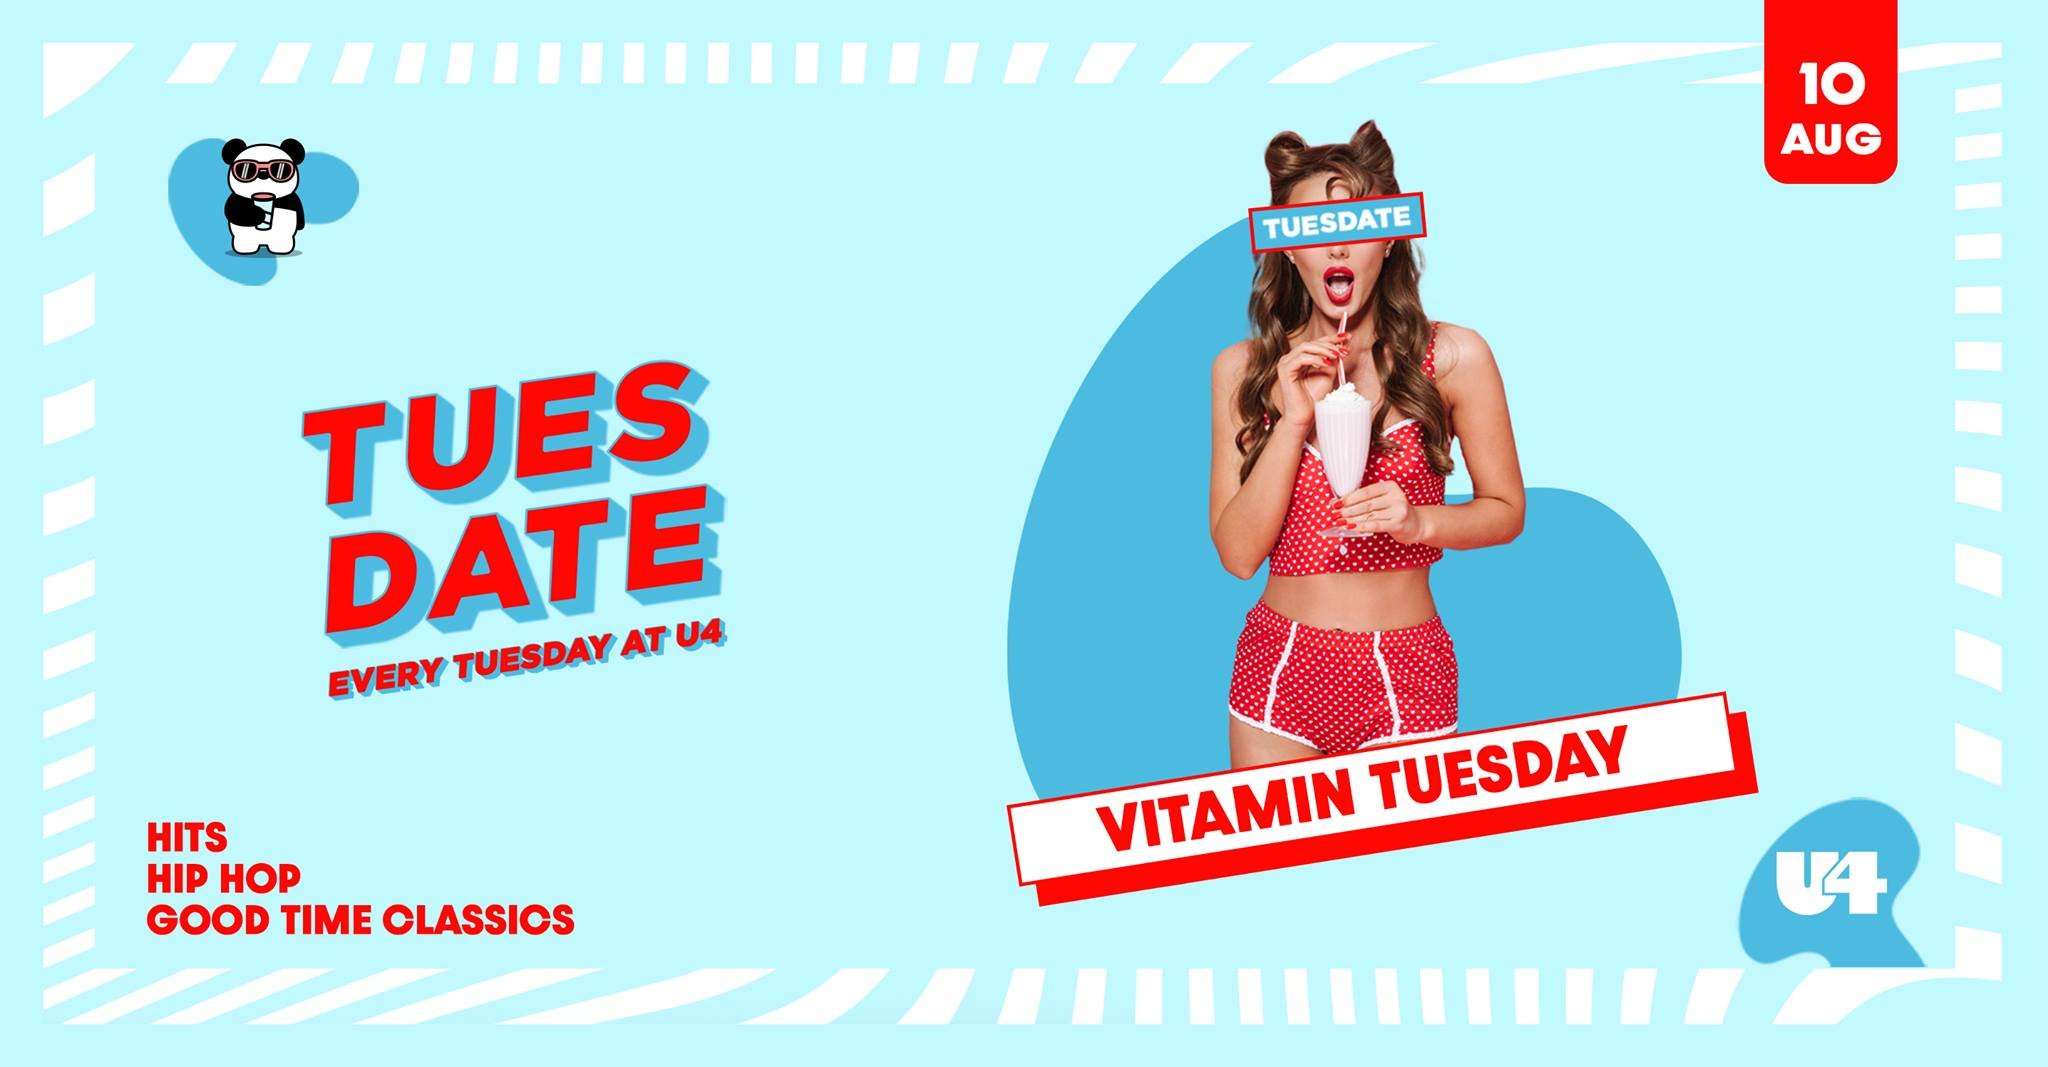 Events Wien: Tuesdate – Vitamin Tuesday – 10.08